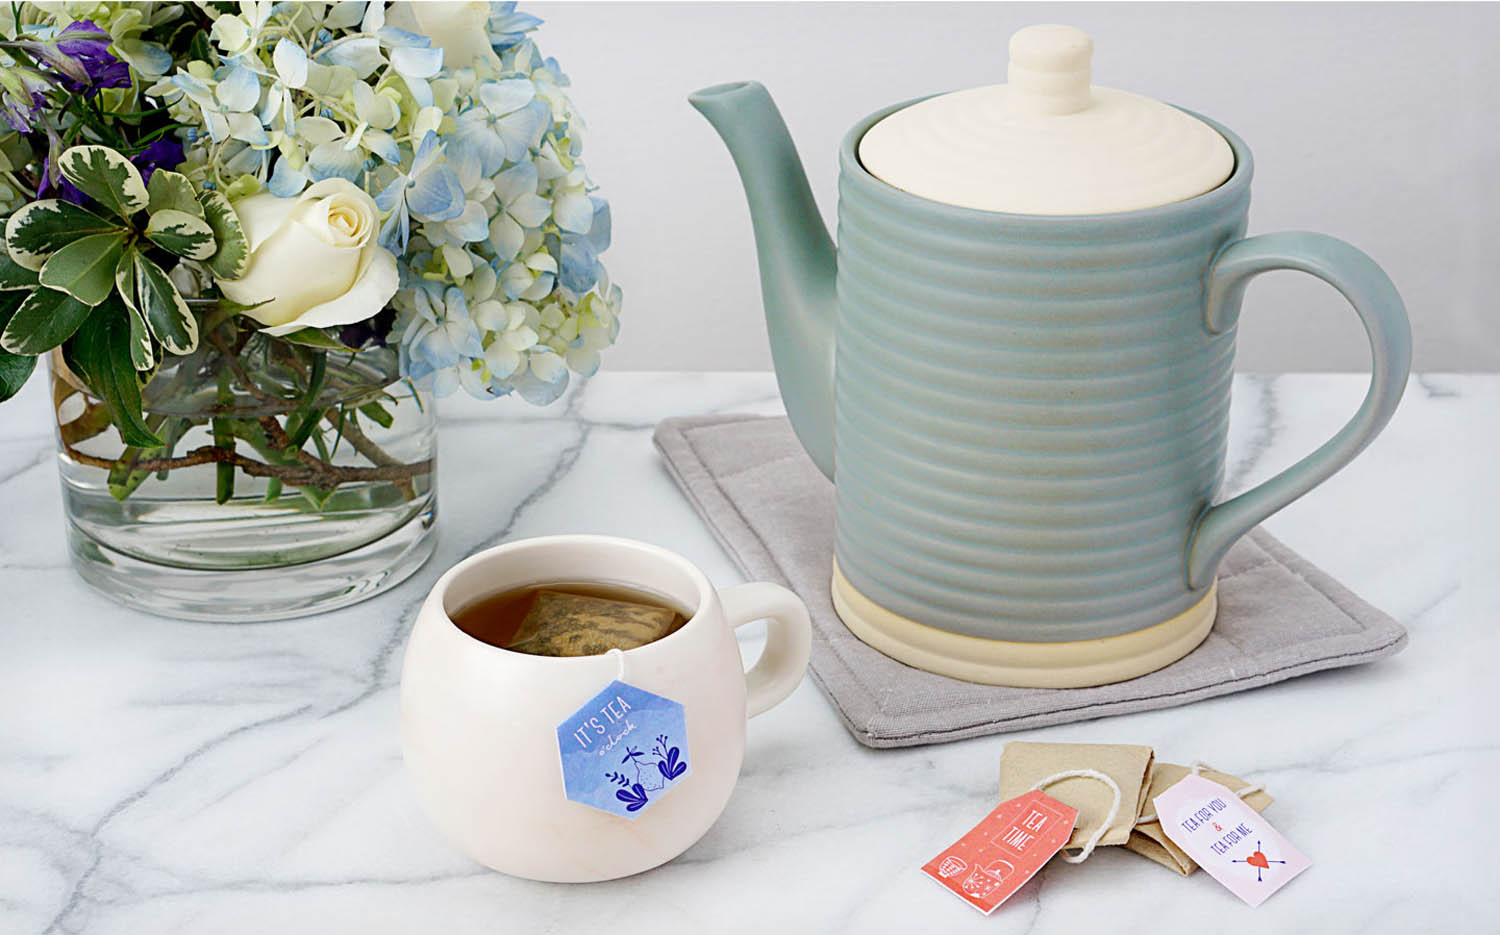 Tea cup with custom print at home tags and DIY tea bags with tea pot and floral bouquet